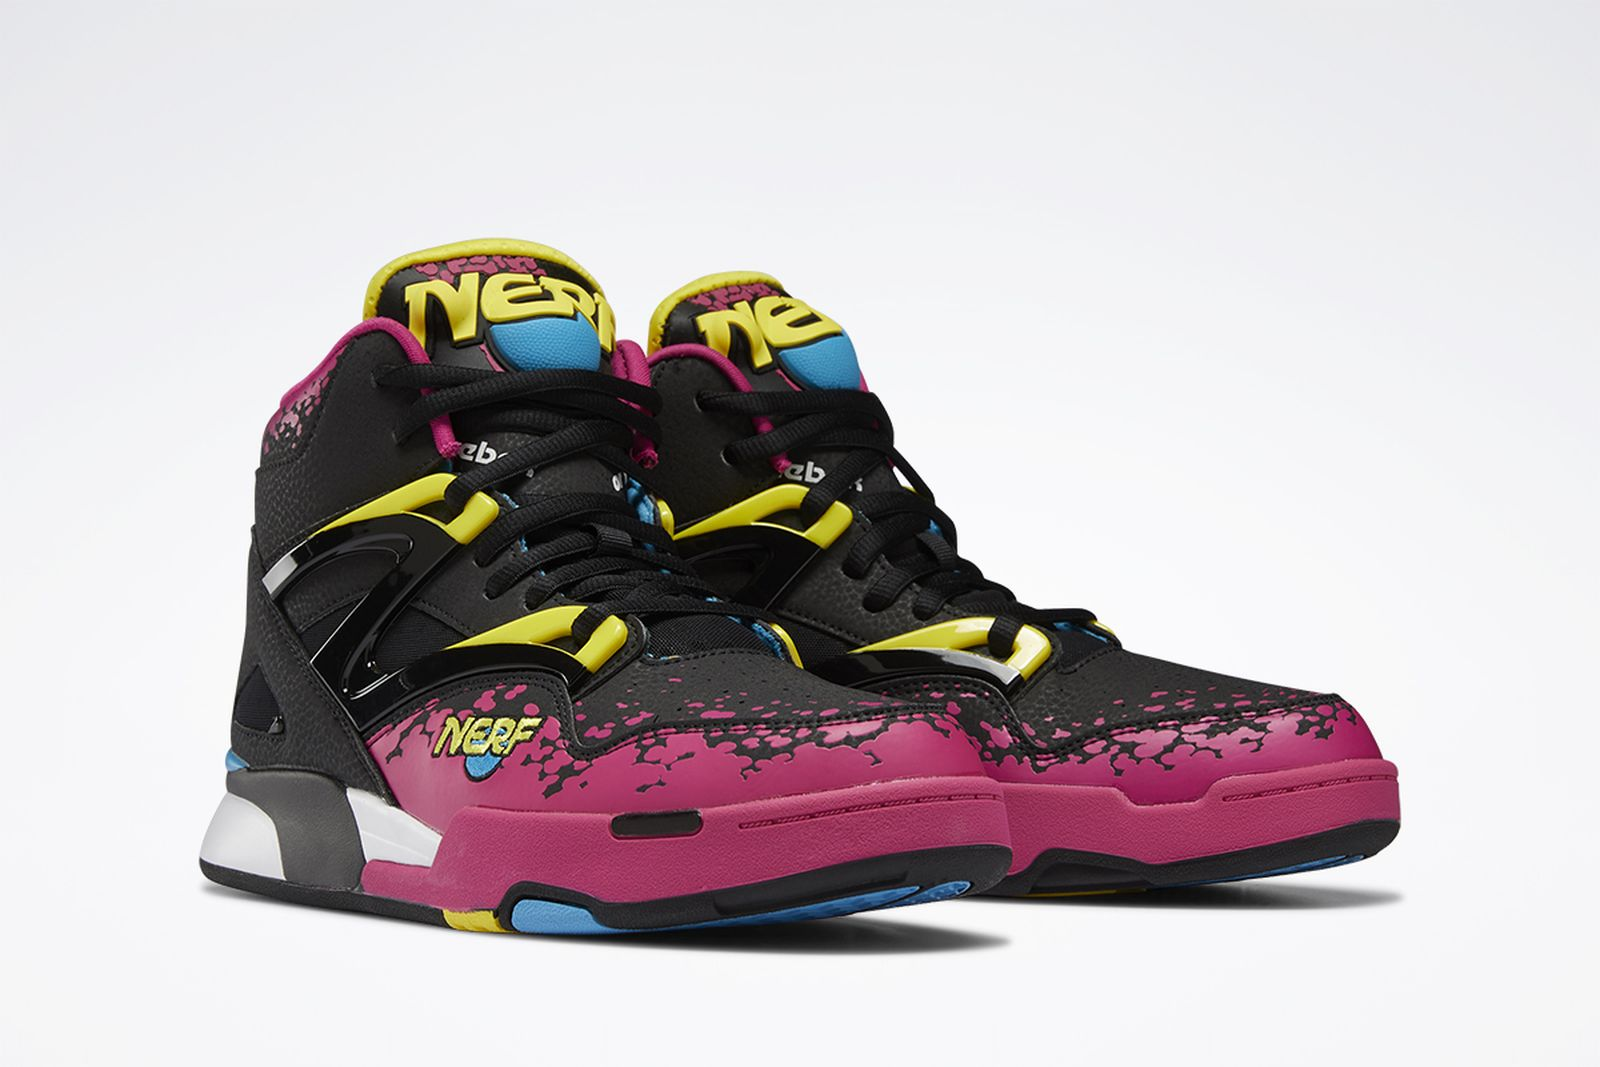 nerf-reebok-retro-basketball-collection-release-date-price-13